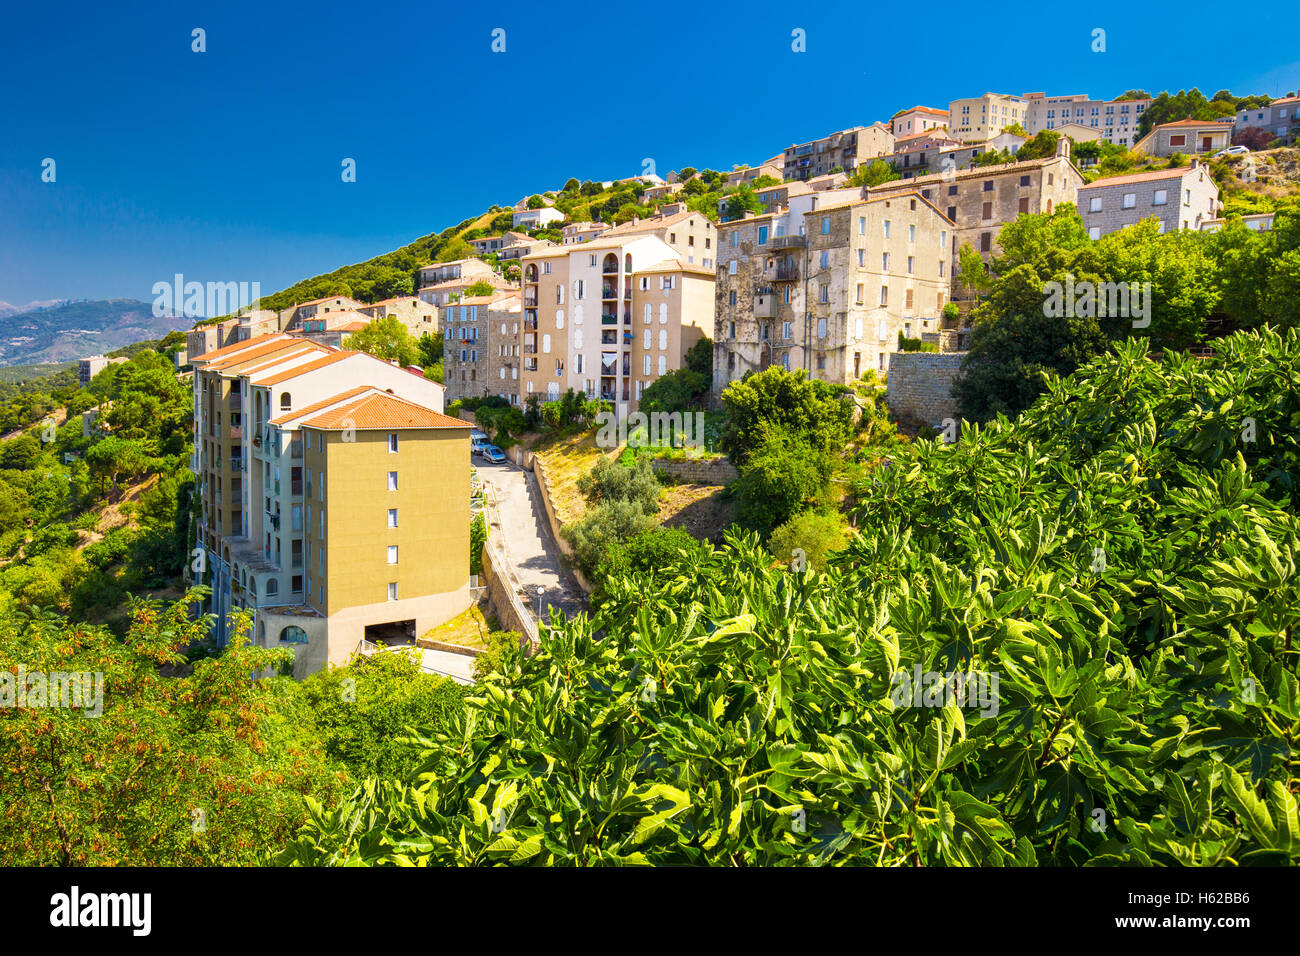 Old city center of Sartene town, Corsica, France, Europe. - Stock Image